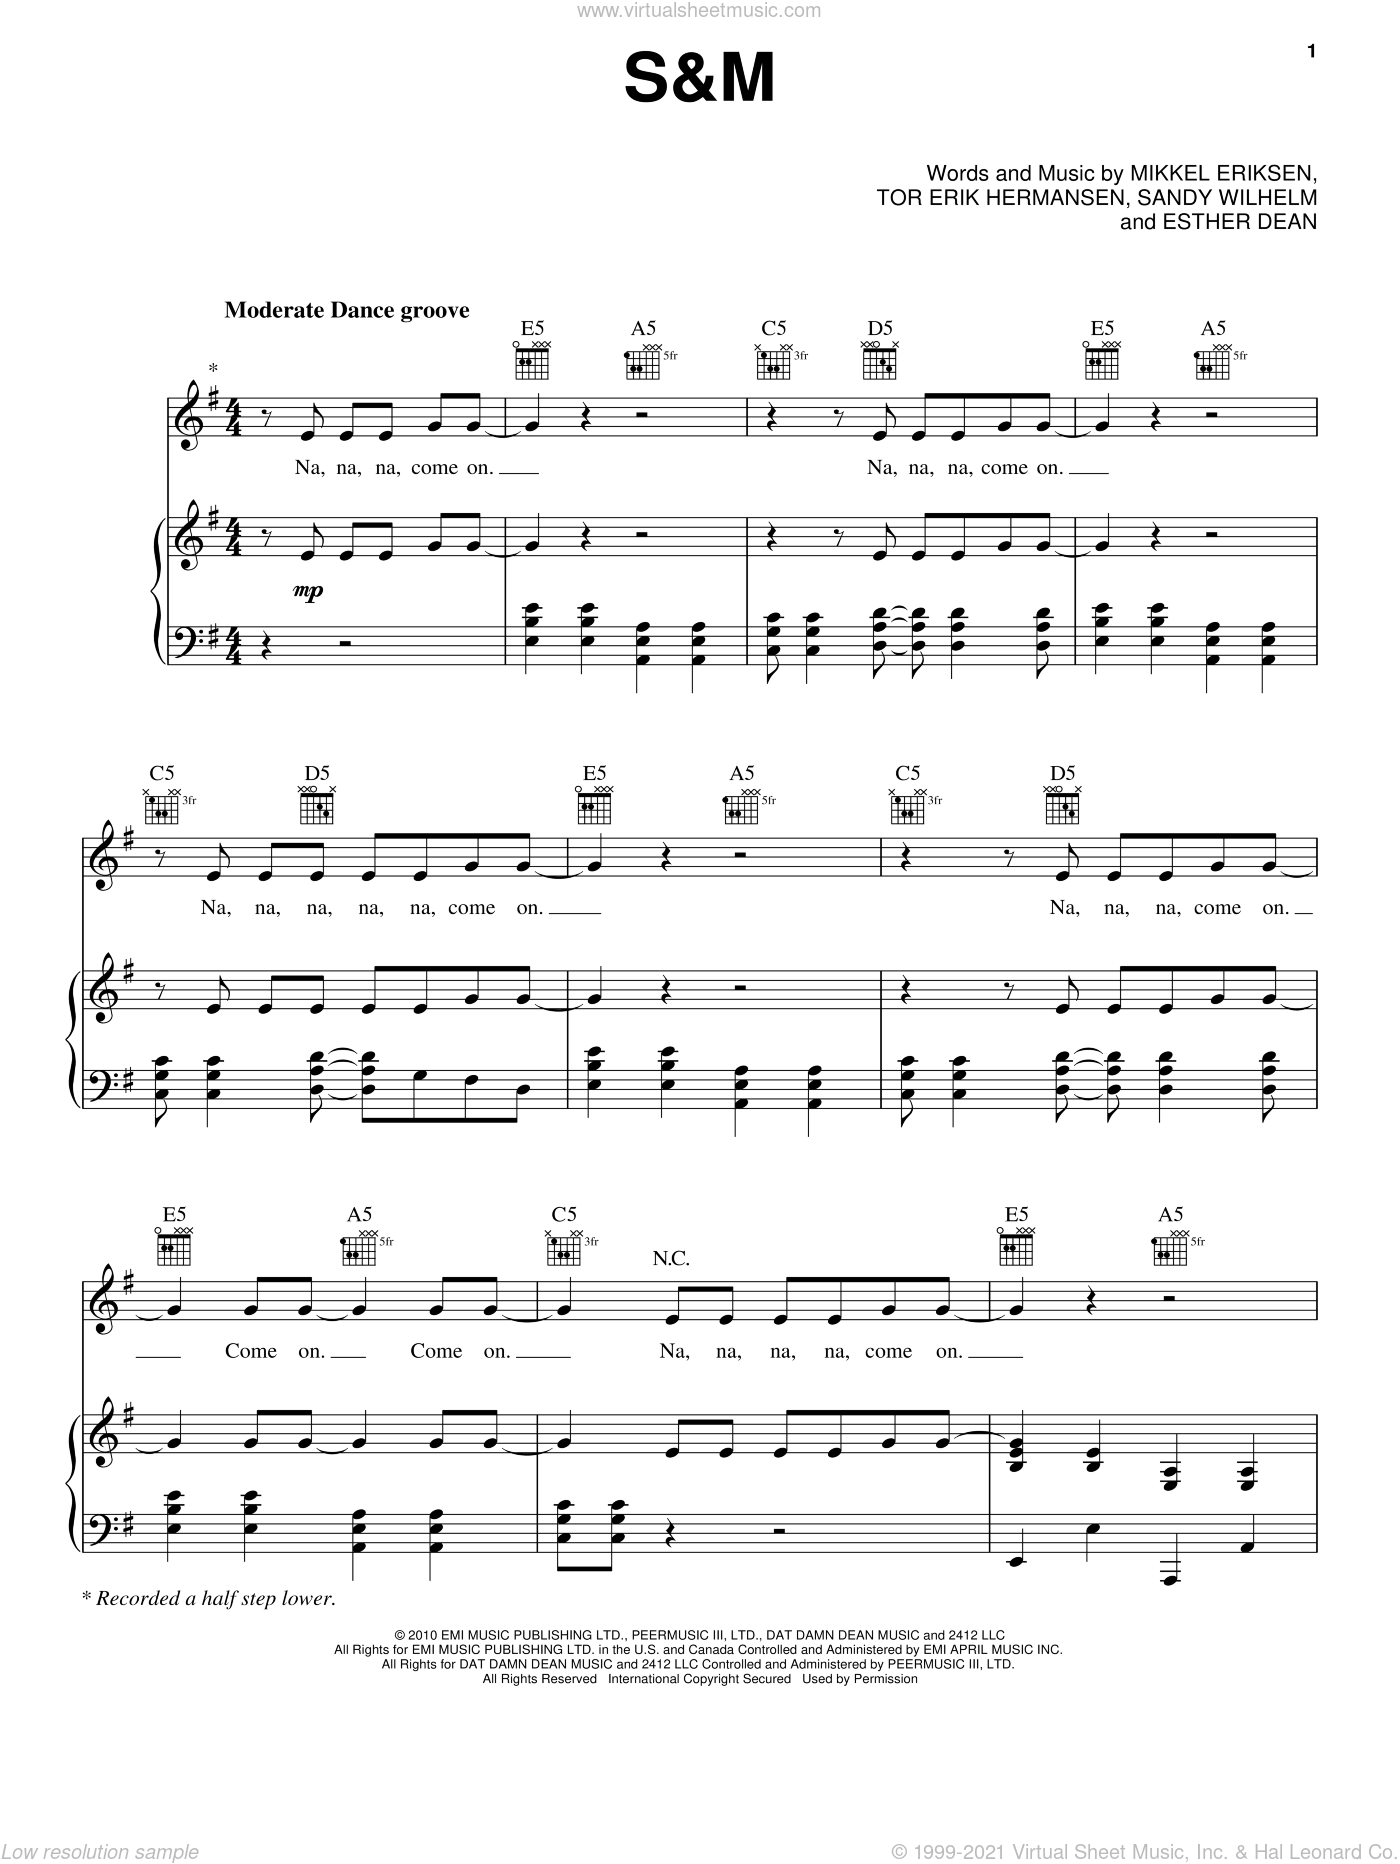 S&M sheet music for voice, piano or guitar by Rihanna, Ester Dean, Mikkel Eriksen, Sandy Wilhelm and Tor Erik Hermansen, intermediate skill level